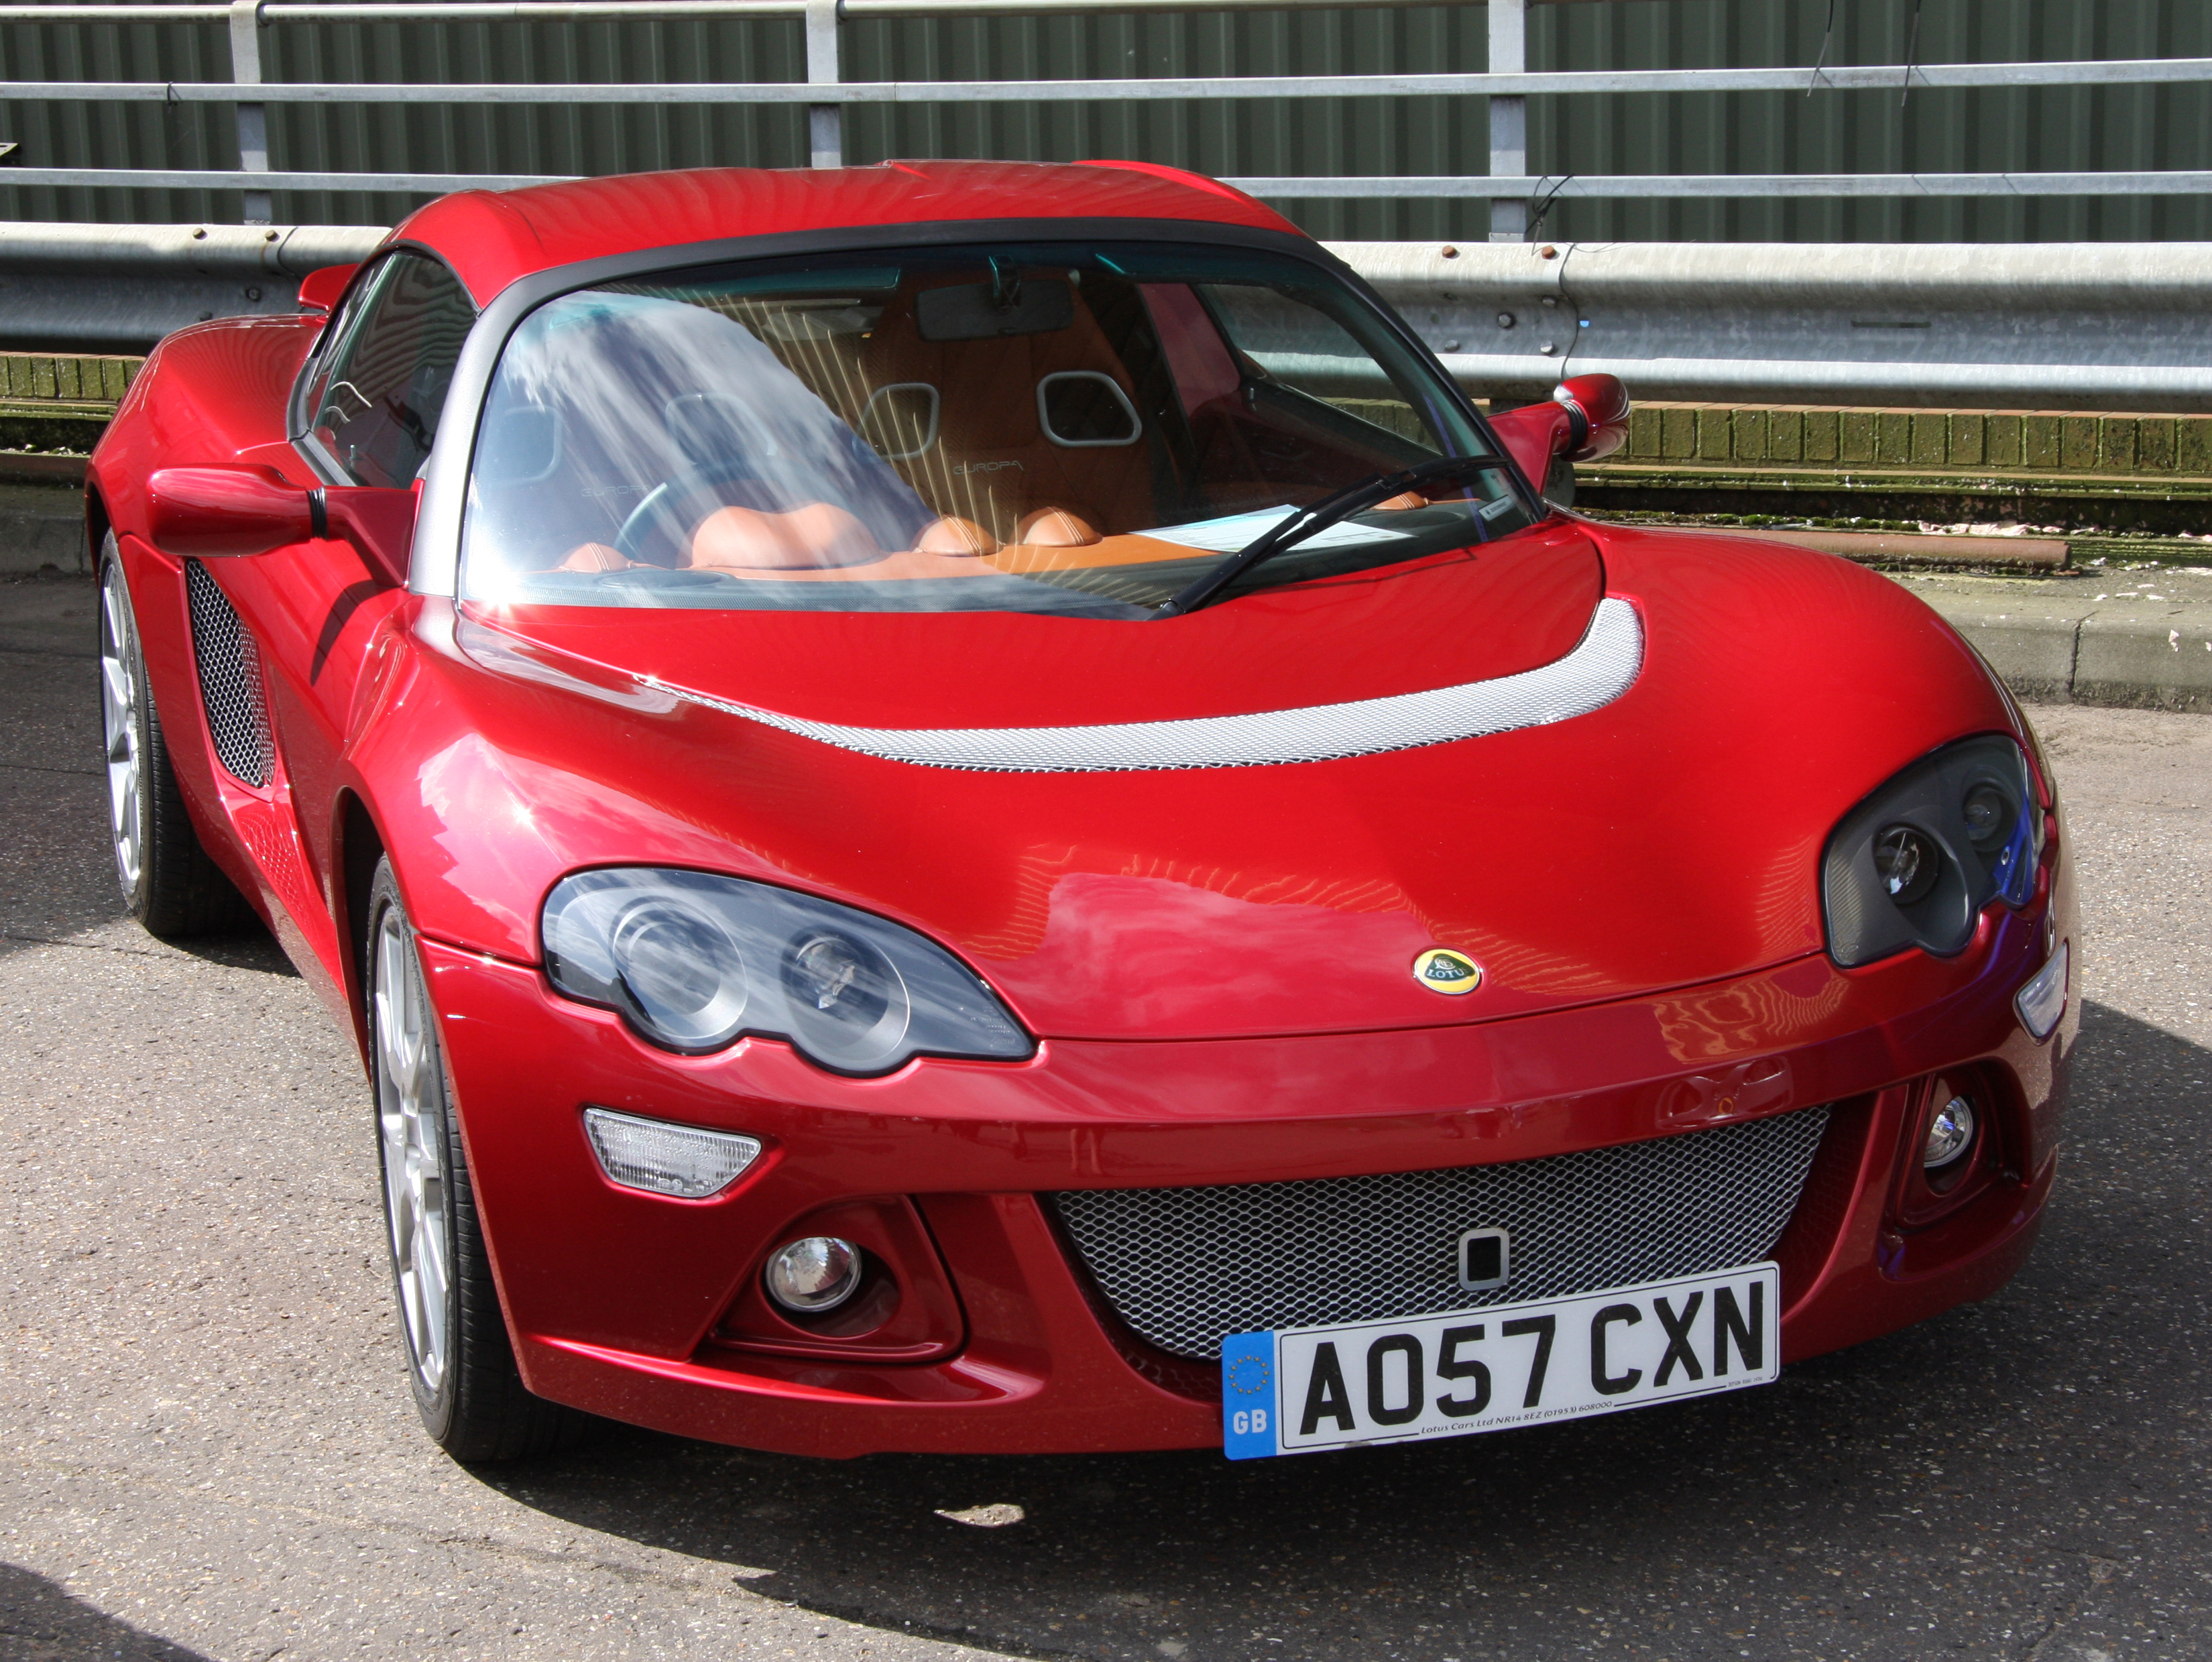 File:Used Lotus Europa for sale - Flickr - exfordy.jpg - Wikimedia ...